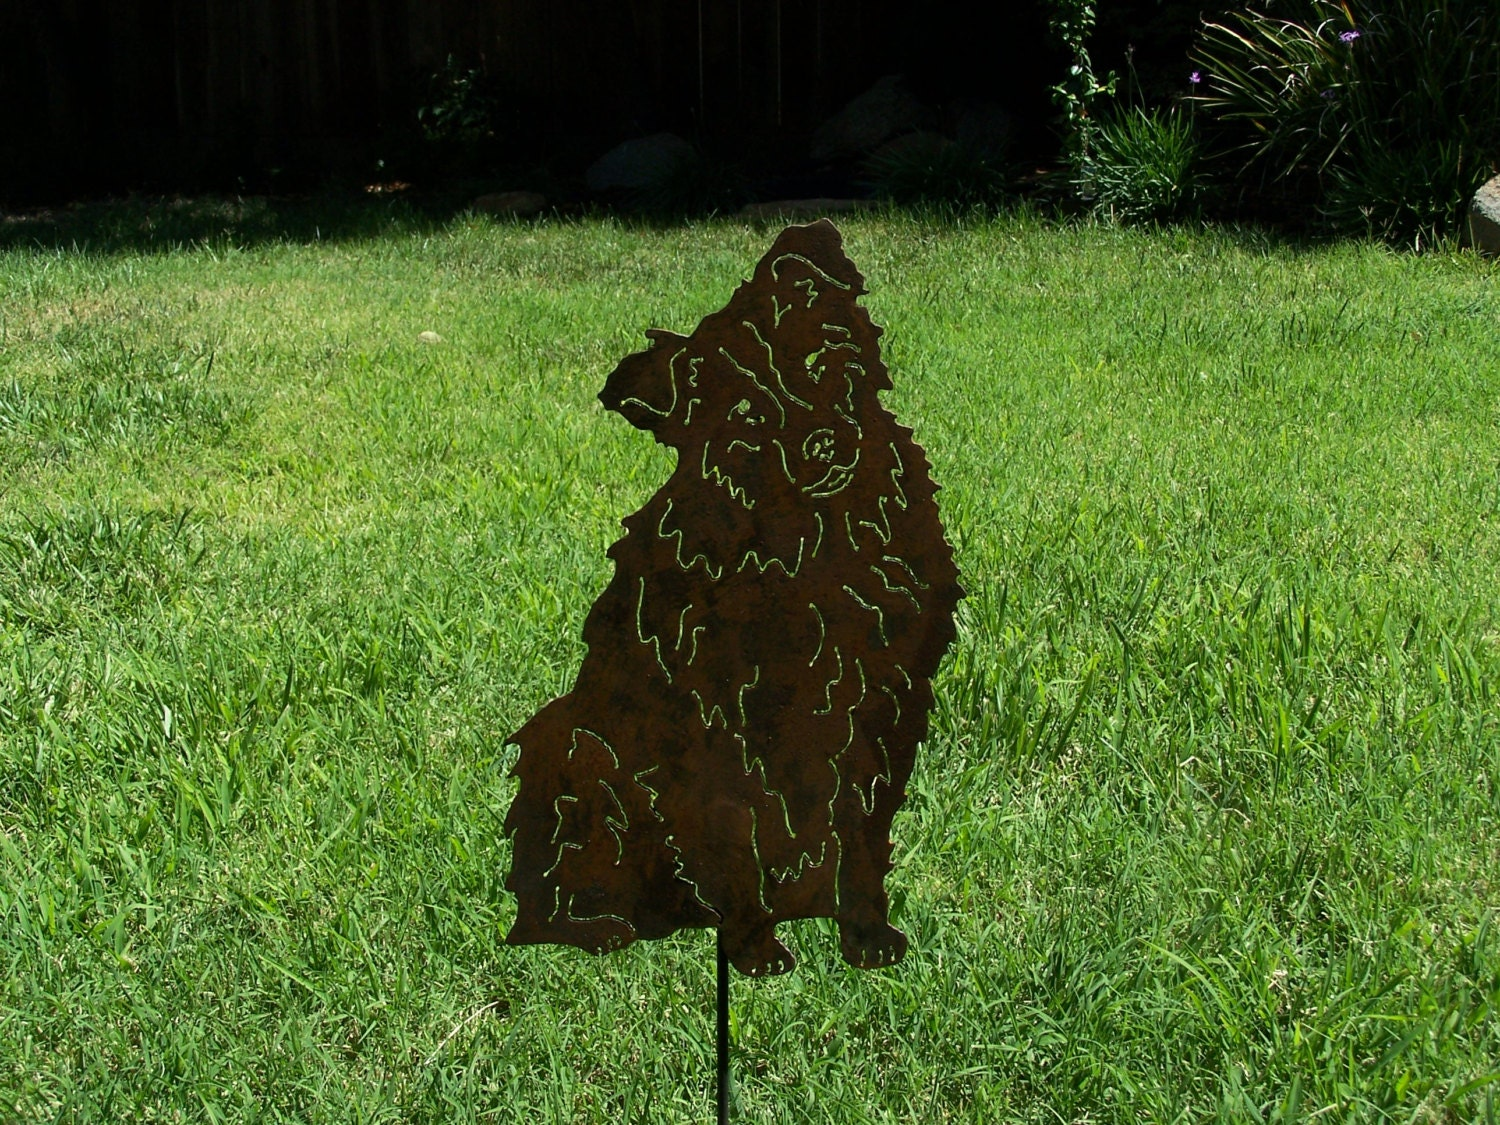 Australian Shepherd Steel Garden Art Sculpture Metal